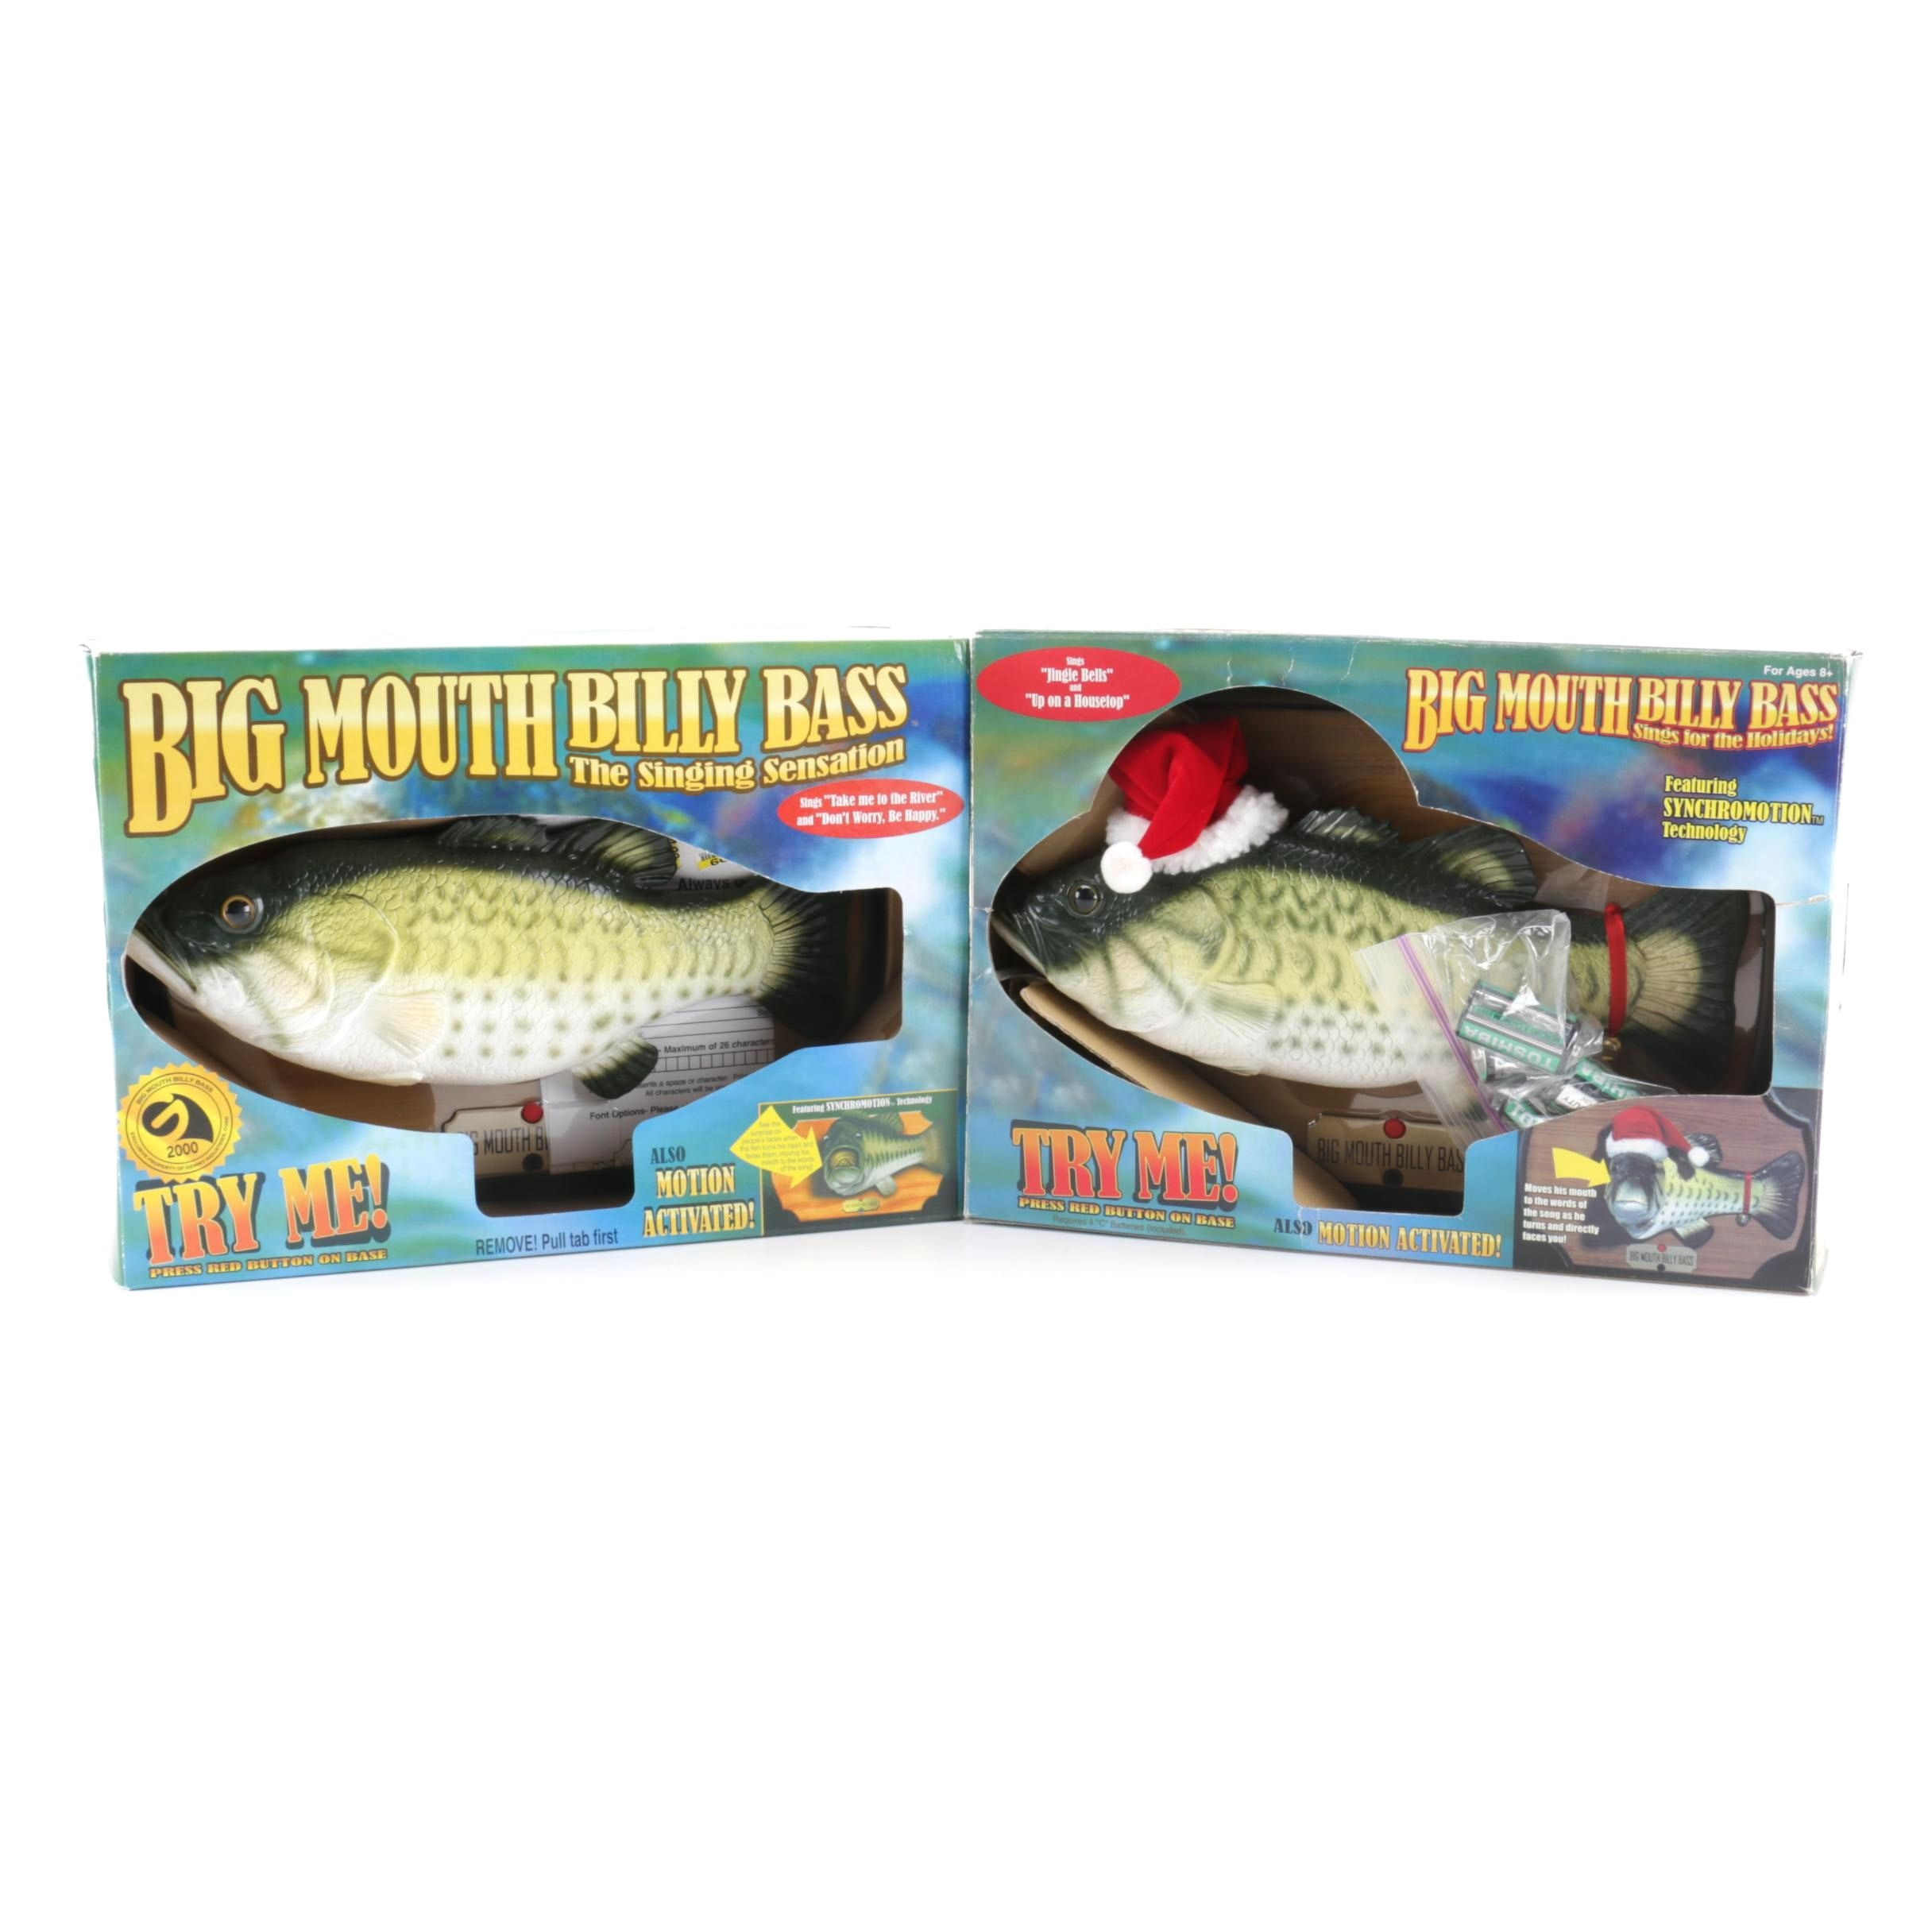 Big Mouth Billy Bass Singing Fish Plaque and Holiday Version